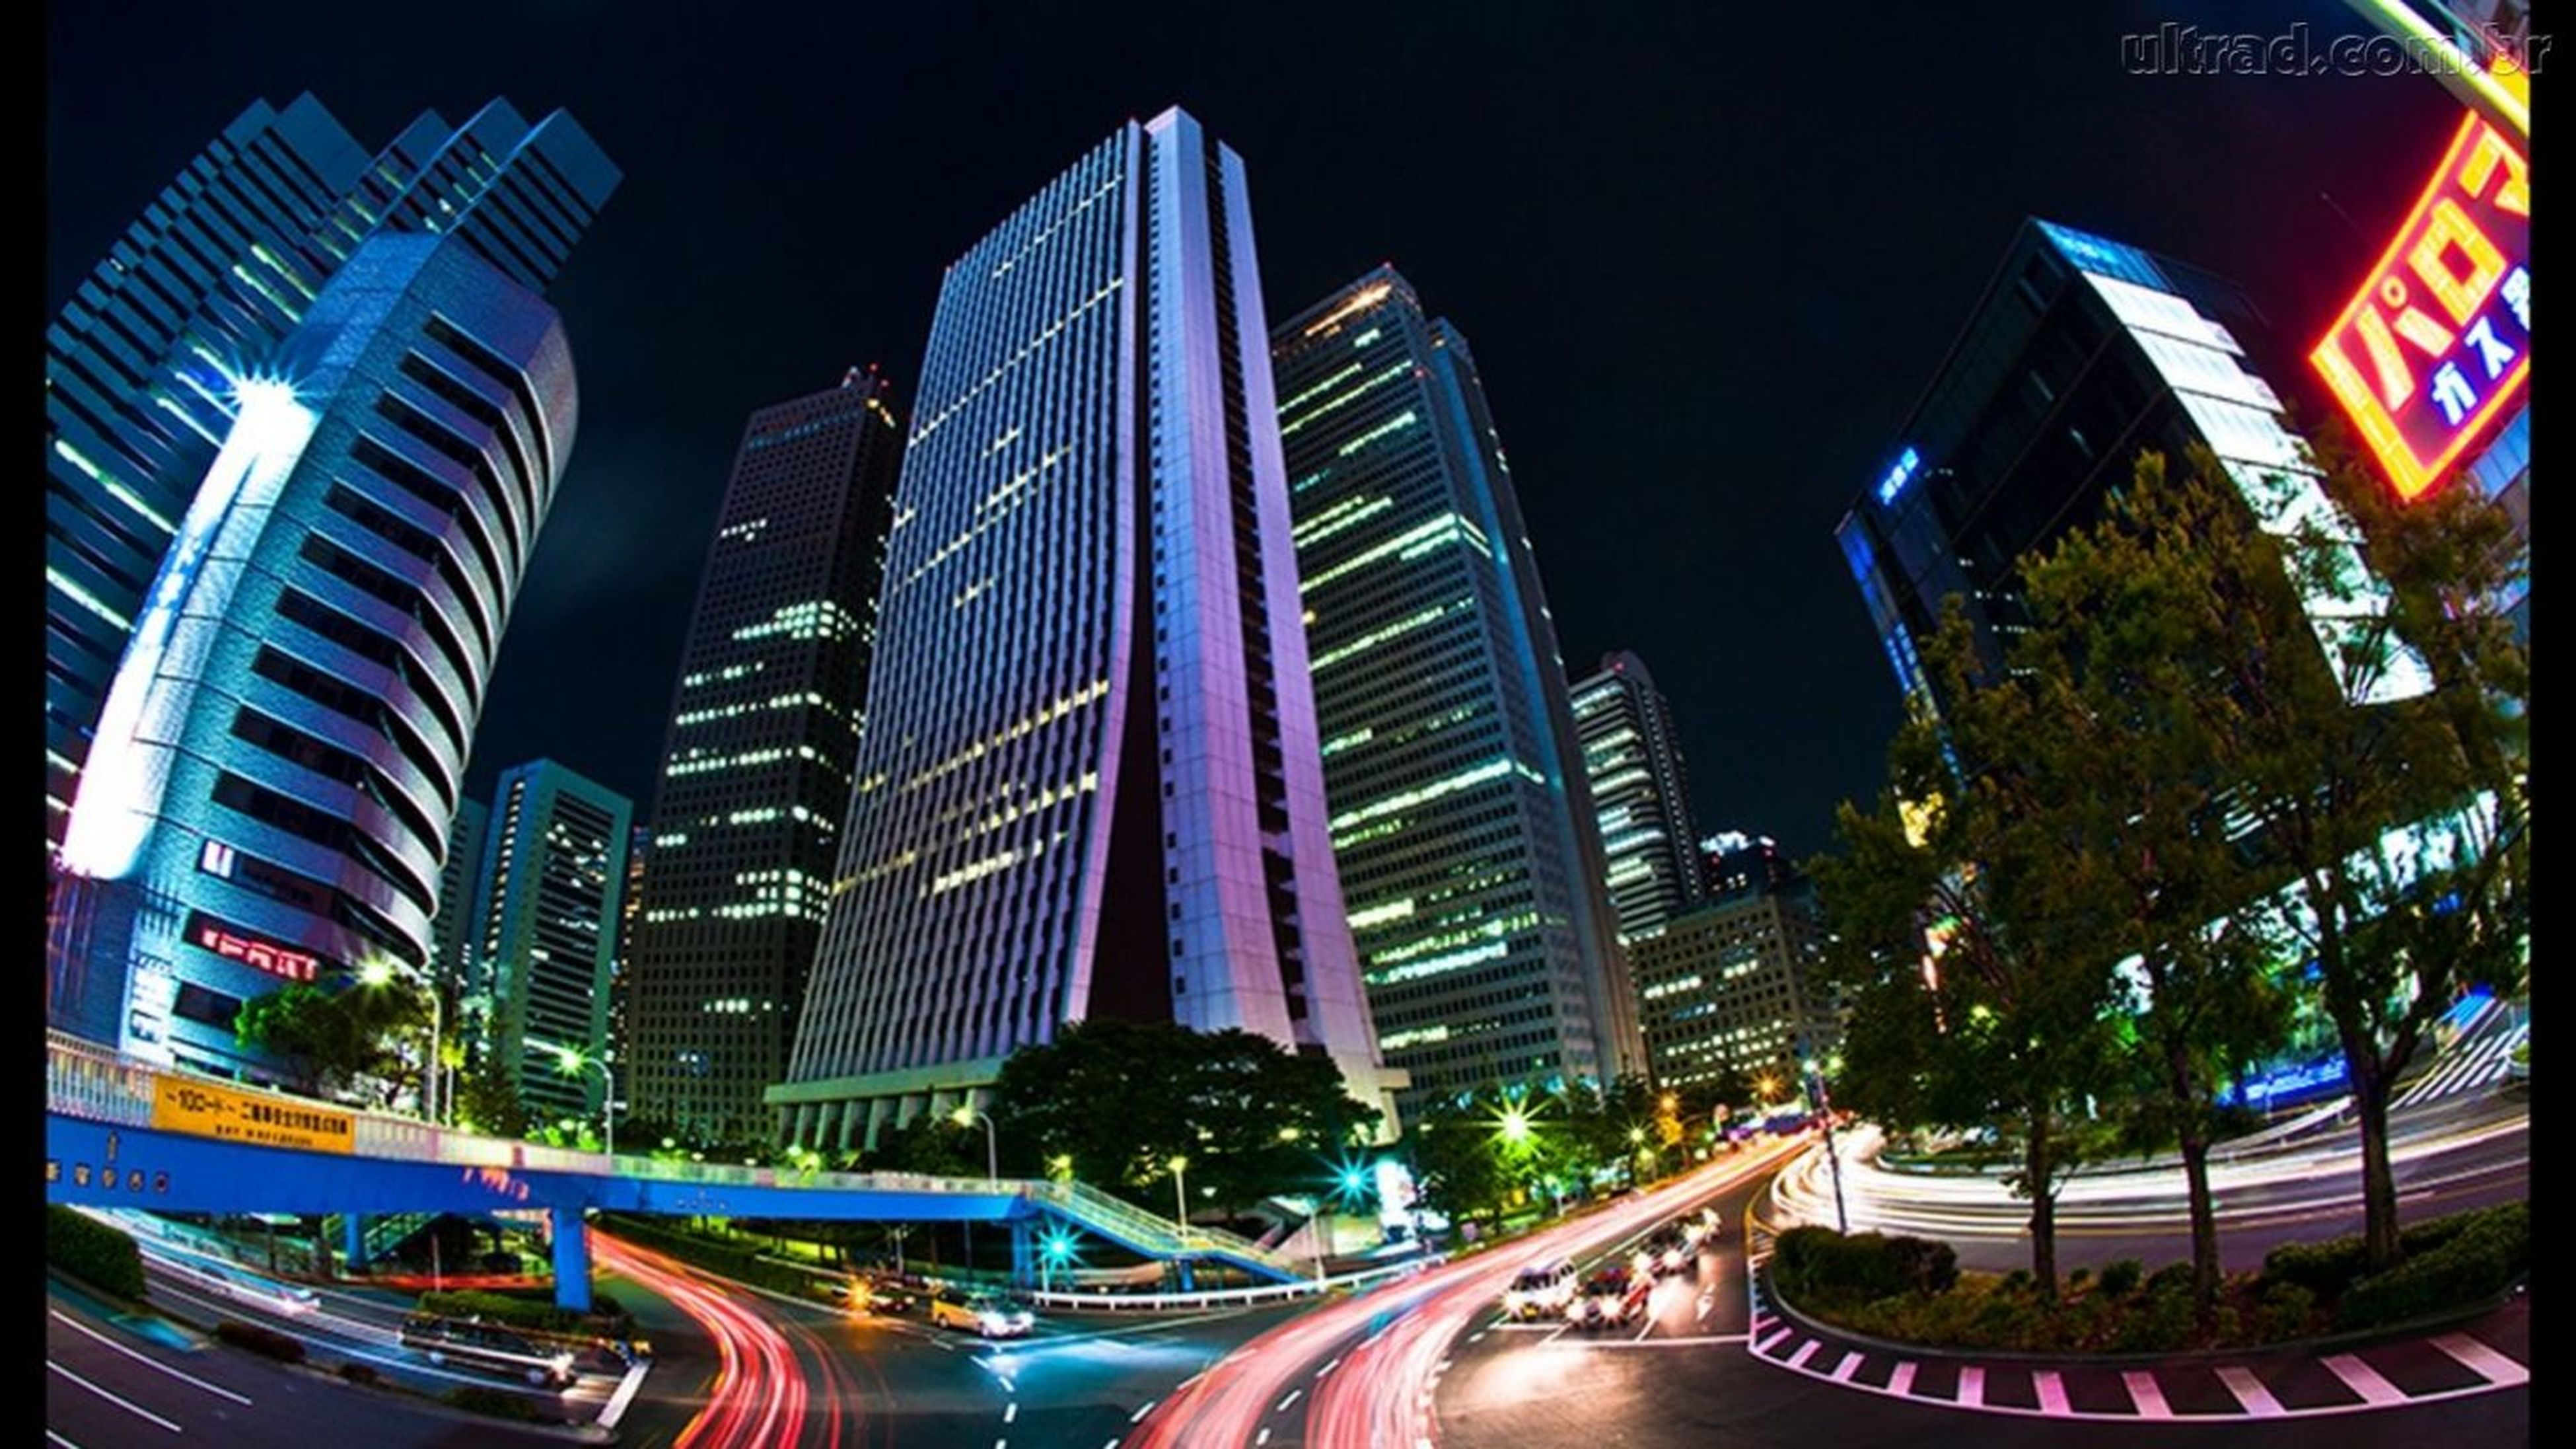 architecture, building exterior, city, built structure, illuminated, modern, skyscraper, night, city life, transportation, office building, tall - high, street, car, sky, low angle view, incidental people, building, road, outdoors